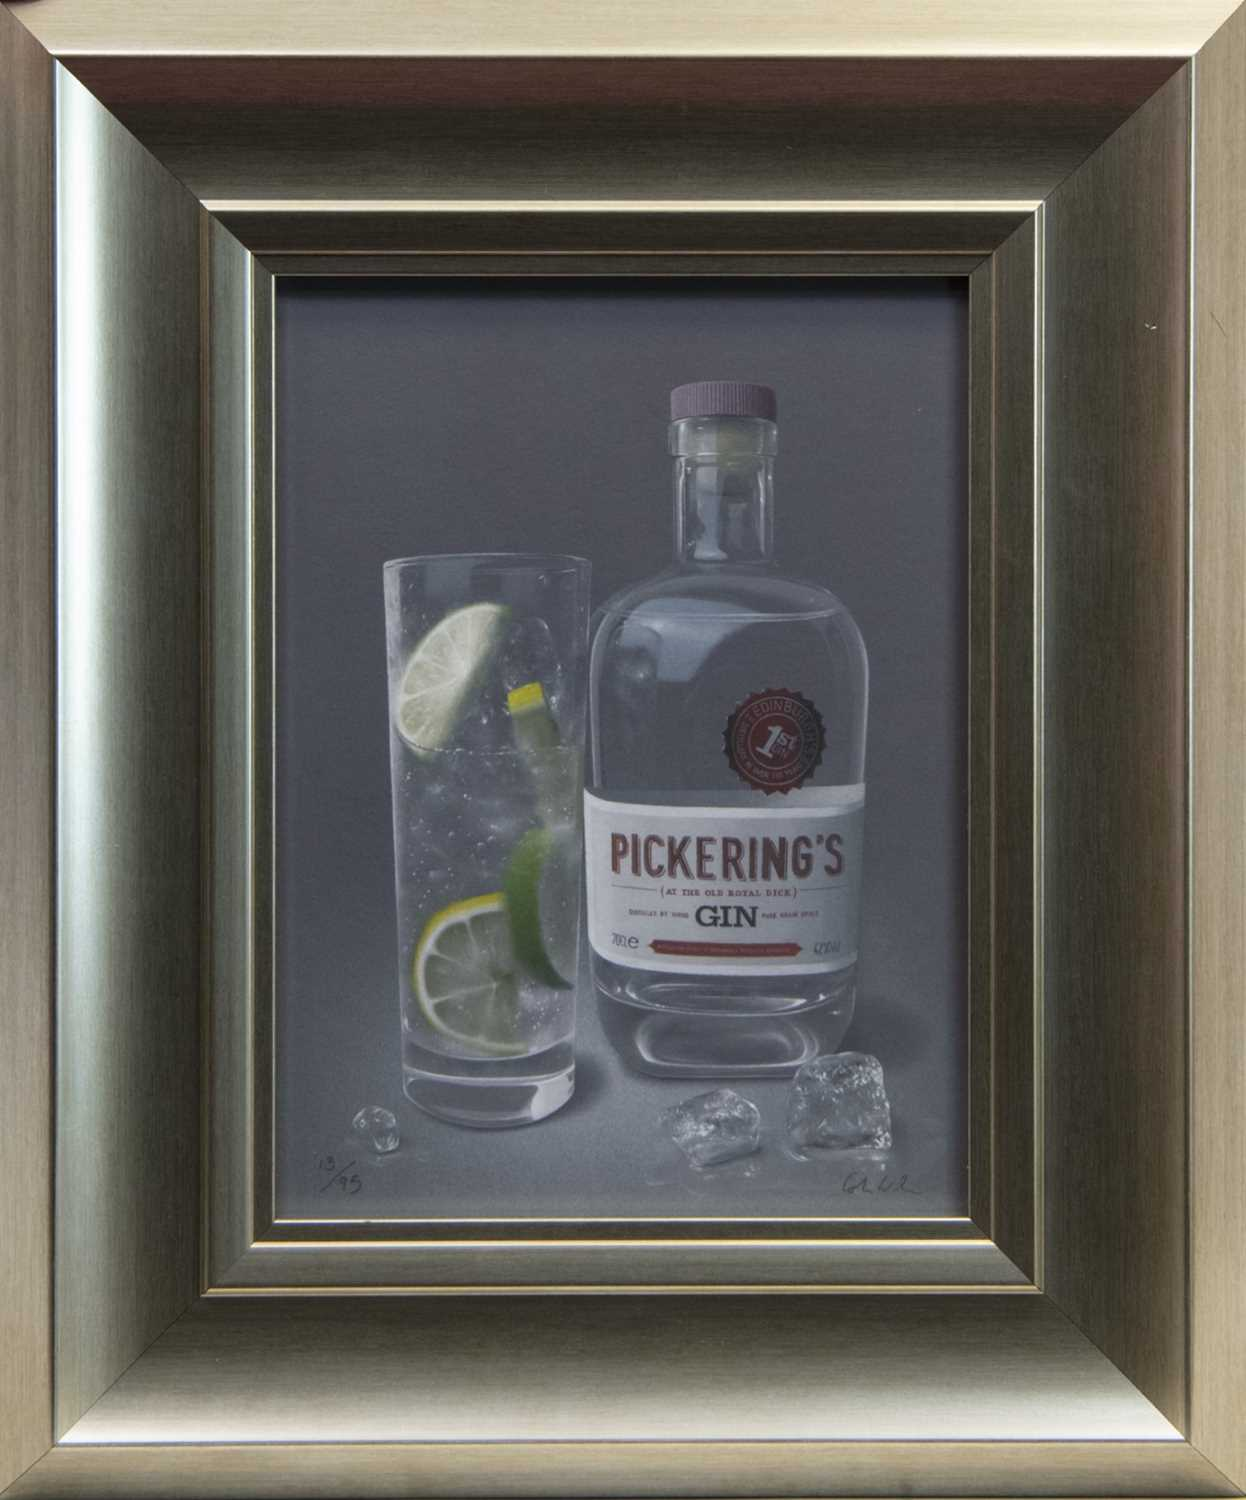 Lot 156 - PICKERING'S GIN, A GICLEE PRINT BY COLIN WILSON